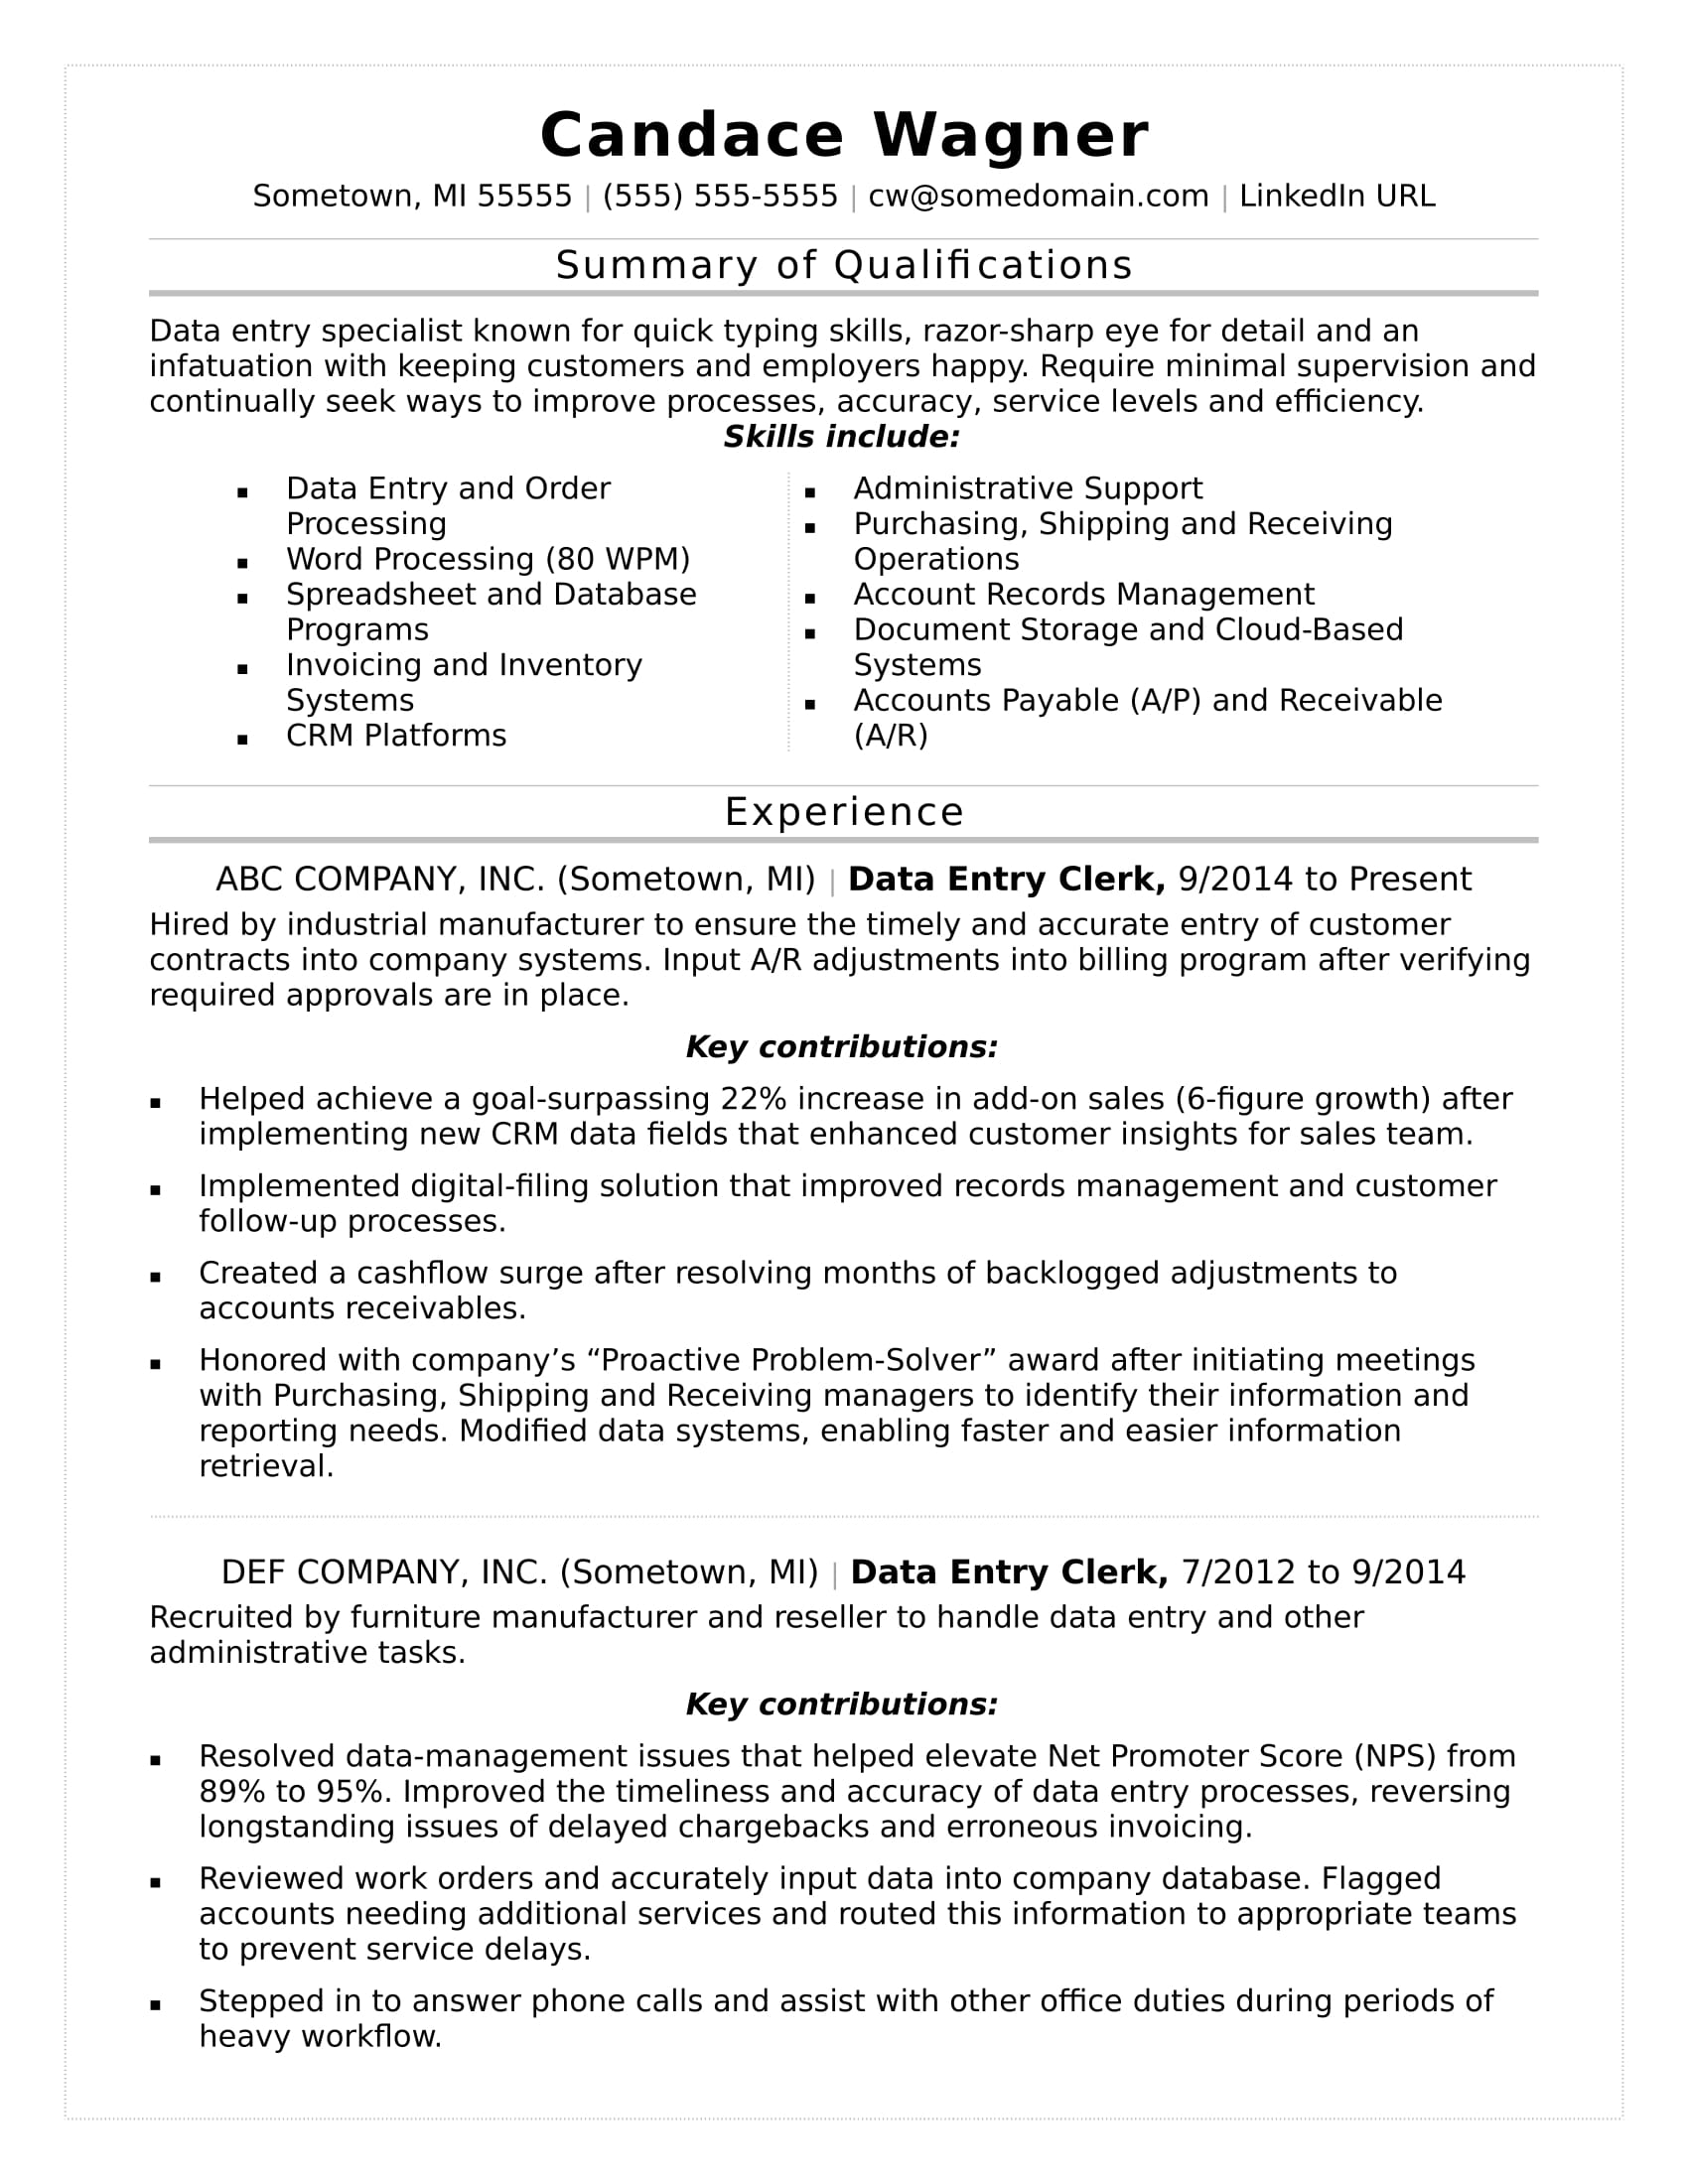 data entry resume sample monster template with summary of qualifications for board passer Resume Resume Template With Summary Of Qualifications